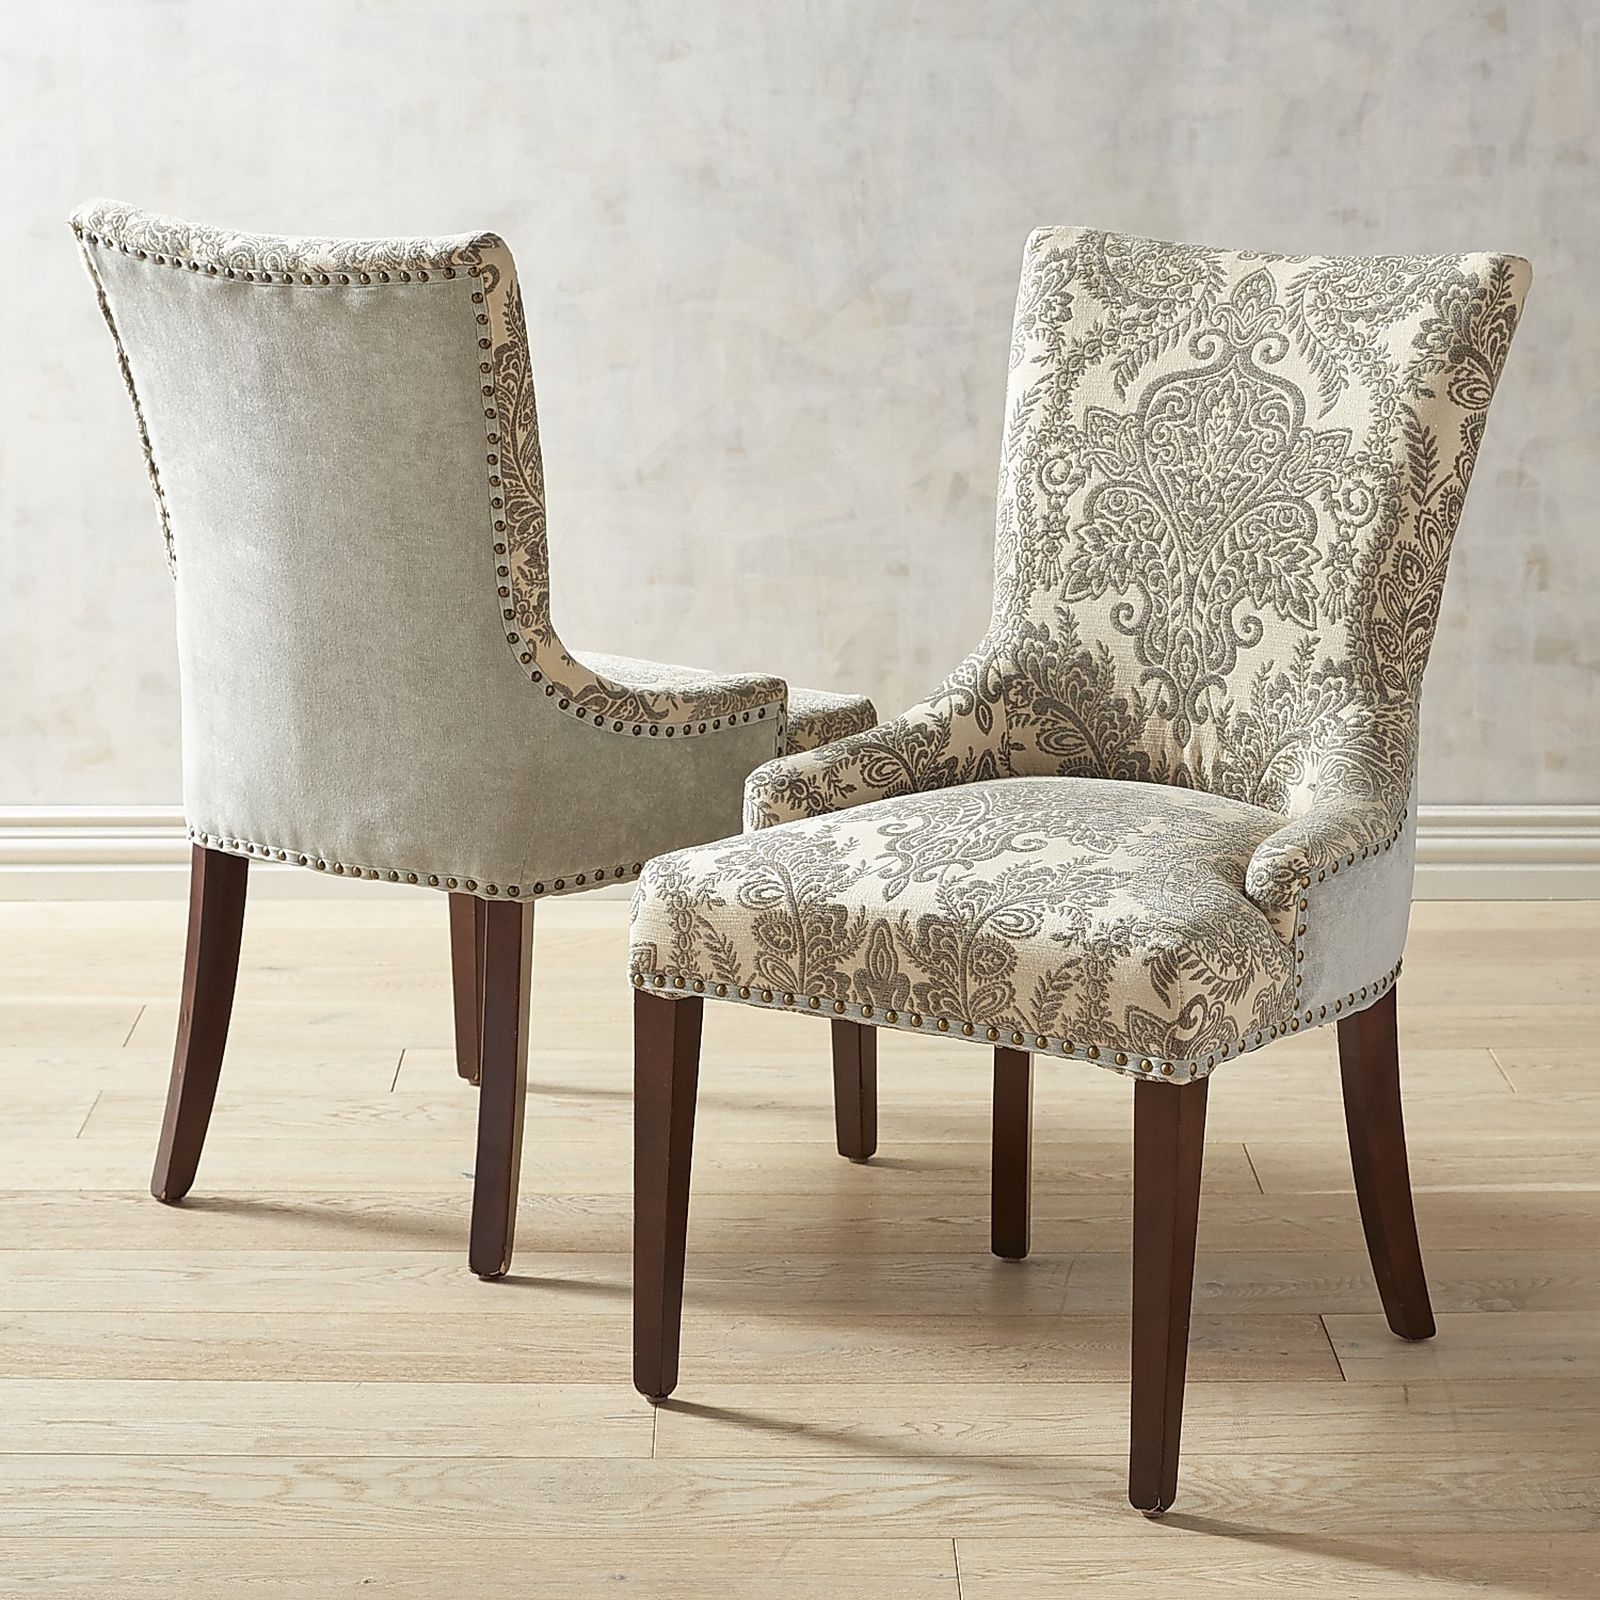 Trendy Dining Room Chairs For 70 Dining Room Chairschomel (View 24 of 25)